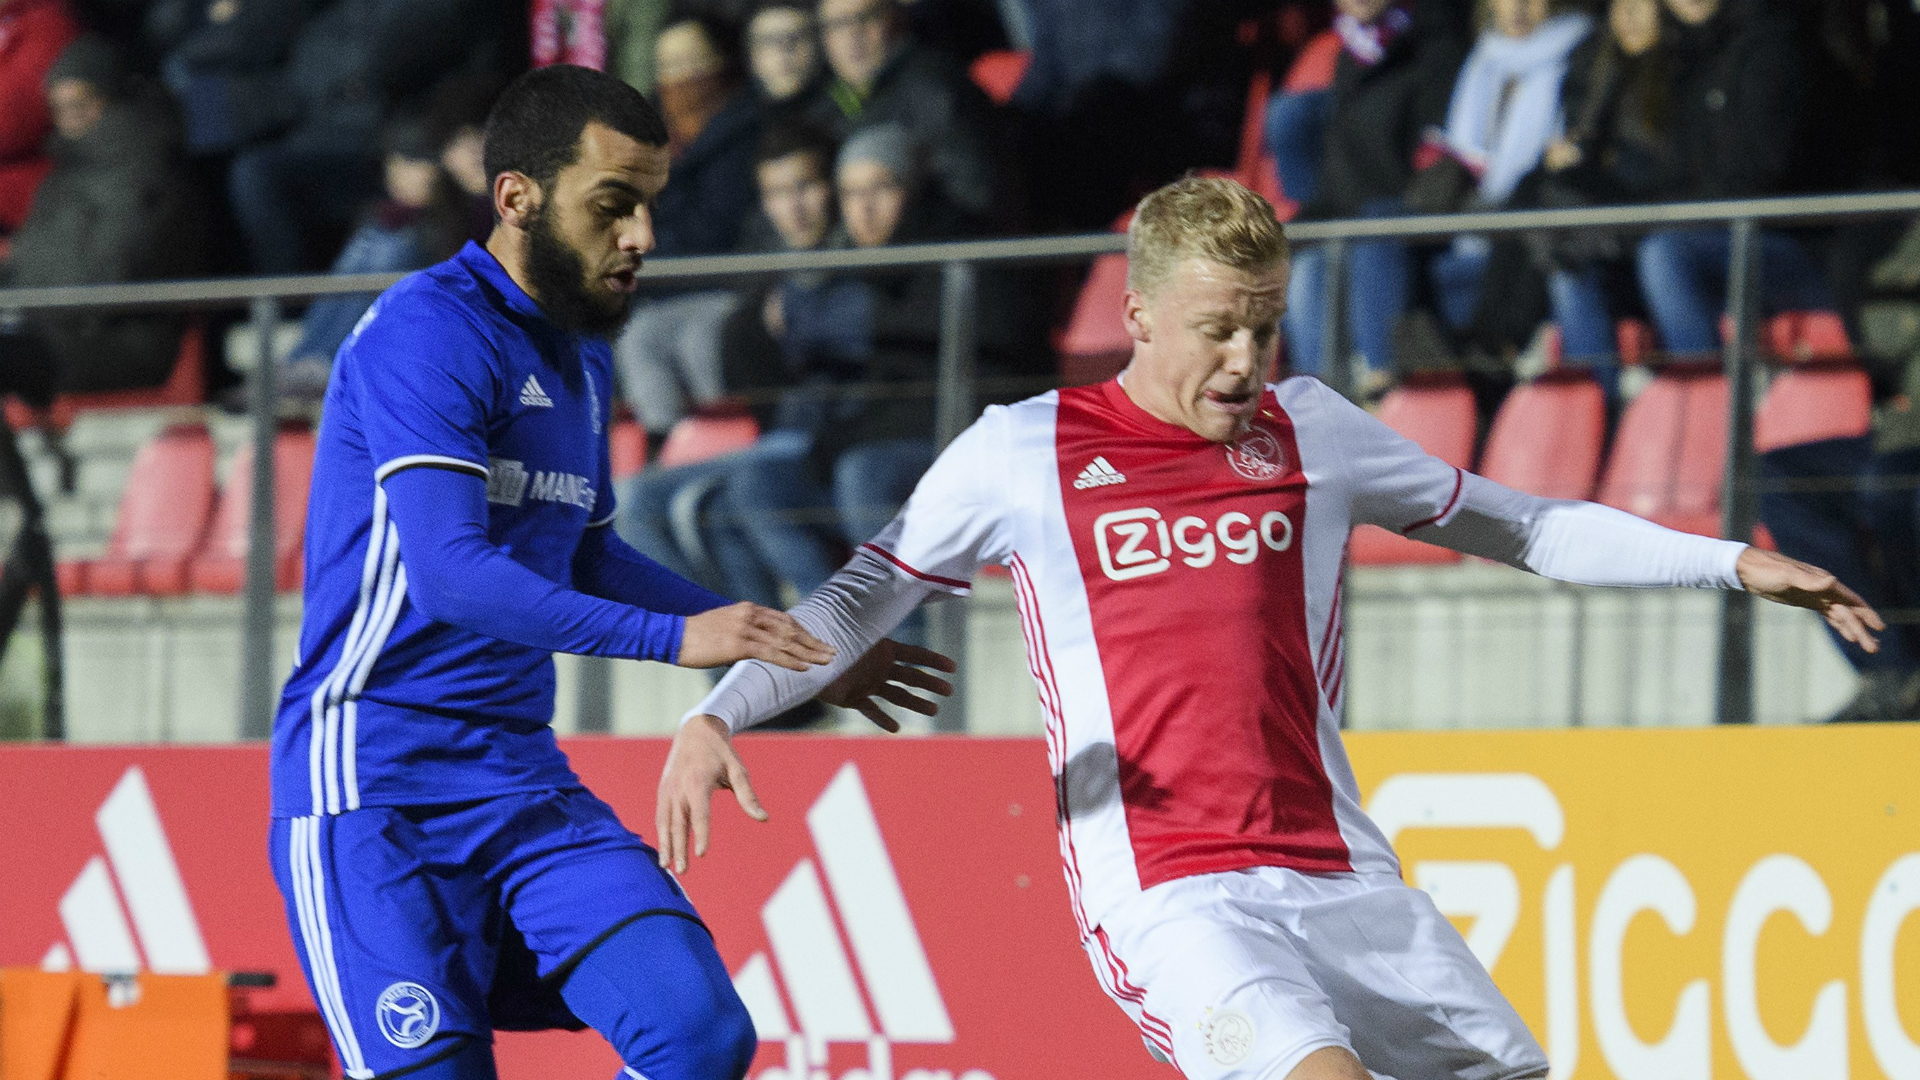 Donny van de Beek, Jong Ajax - Almere City FC, Jupiler League 01302017